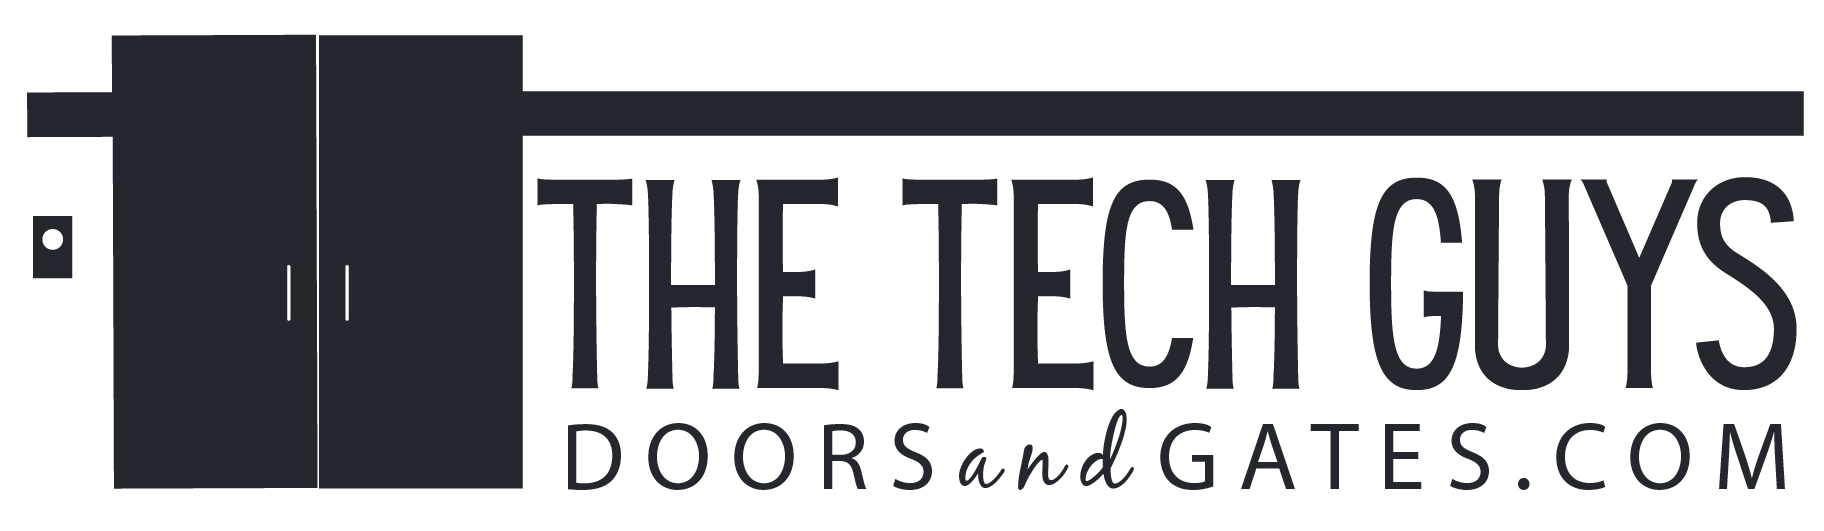 The Tech Guys Doors and Gates Electric Gate Repair Santa Monica Offers Durable and Versatile Door and Gate Options Available